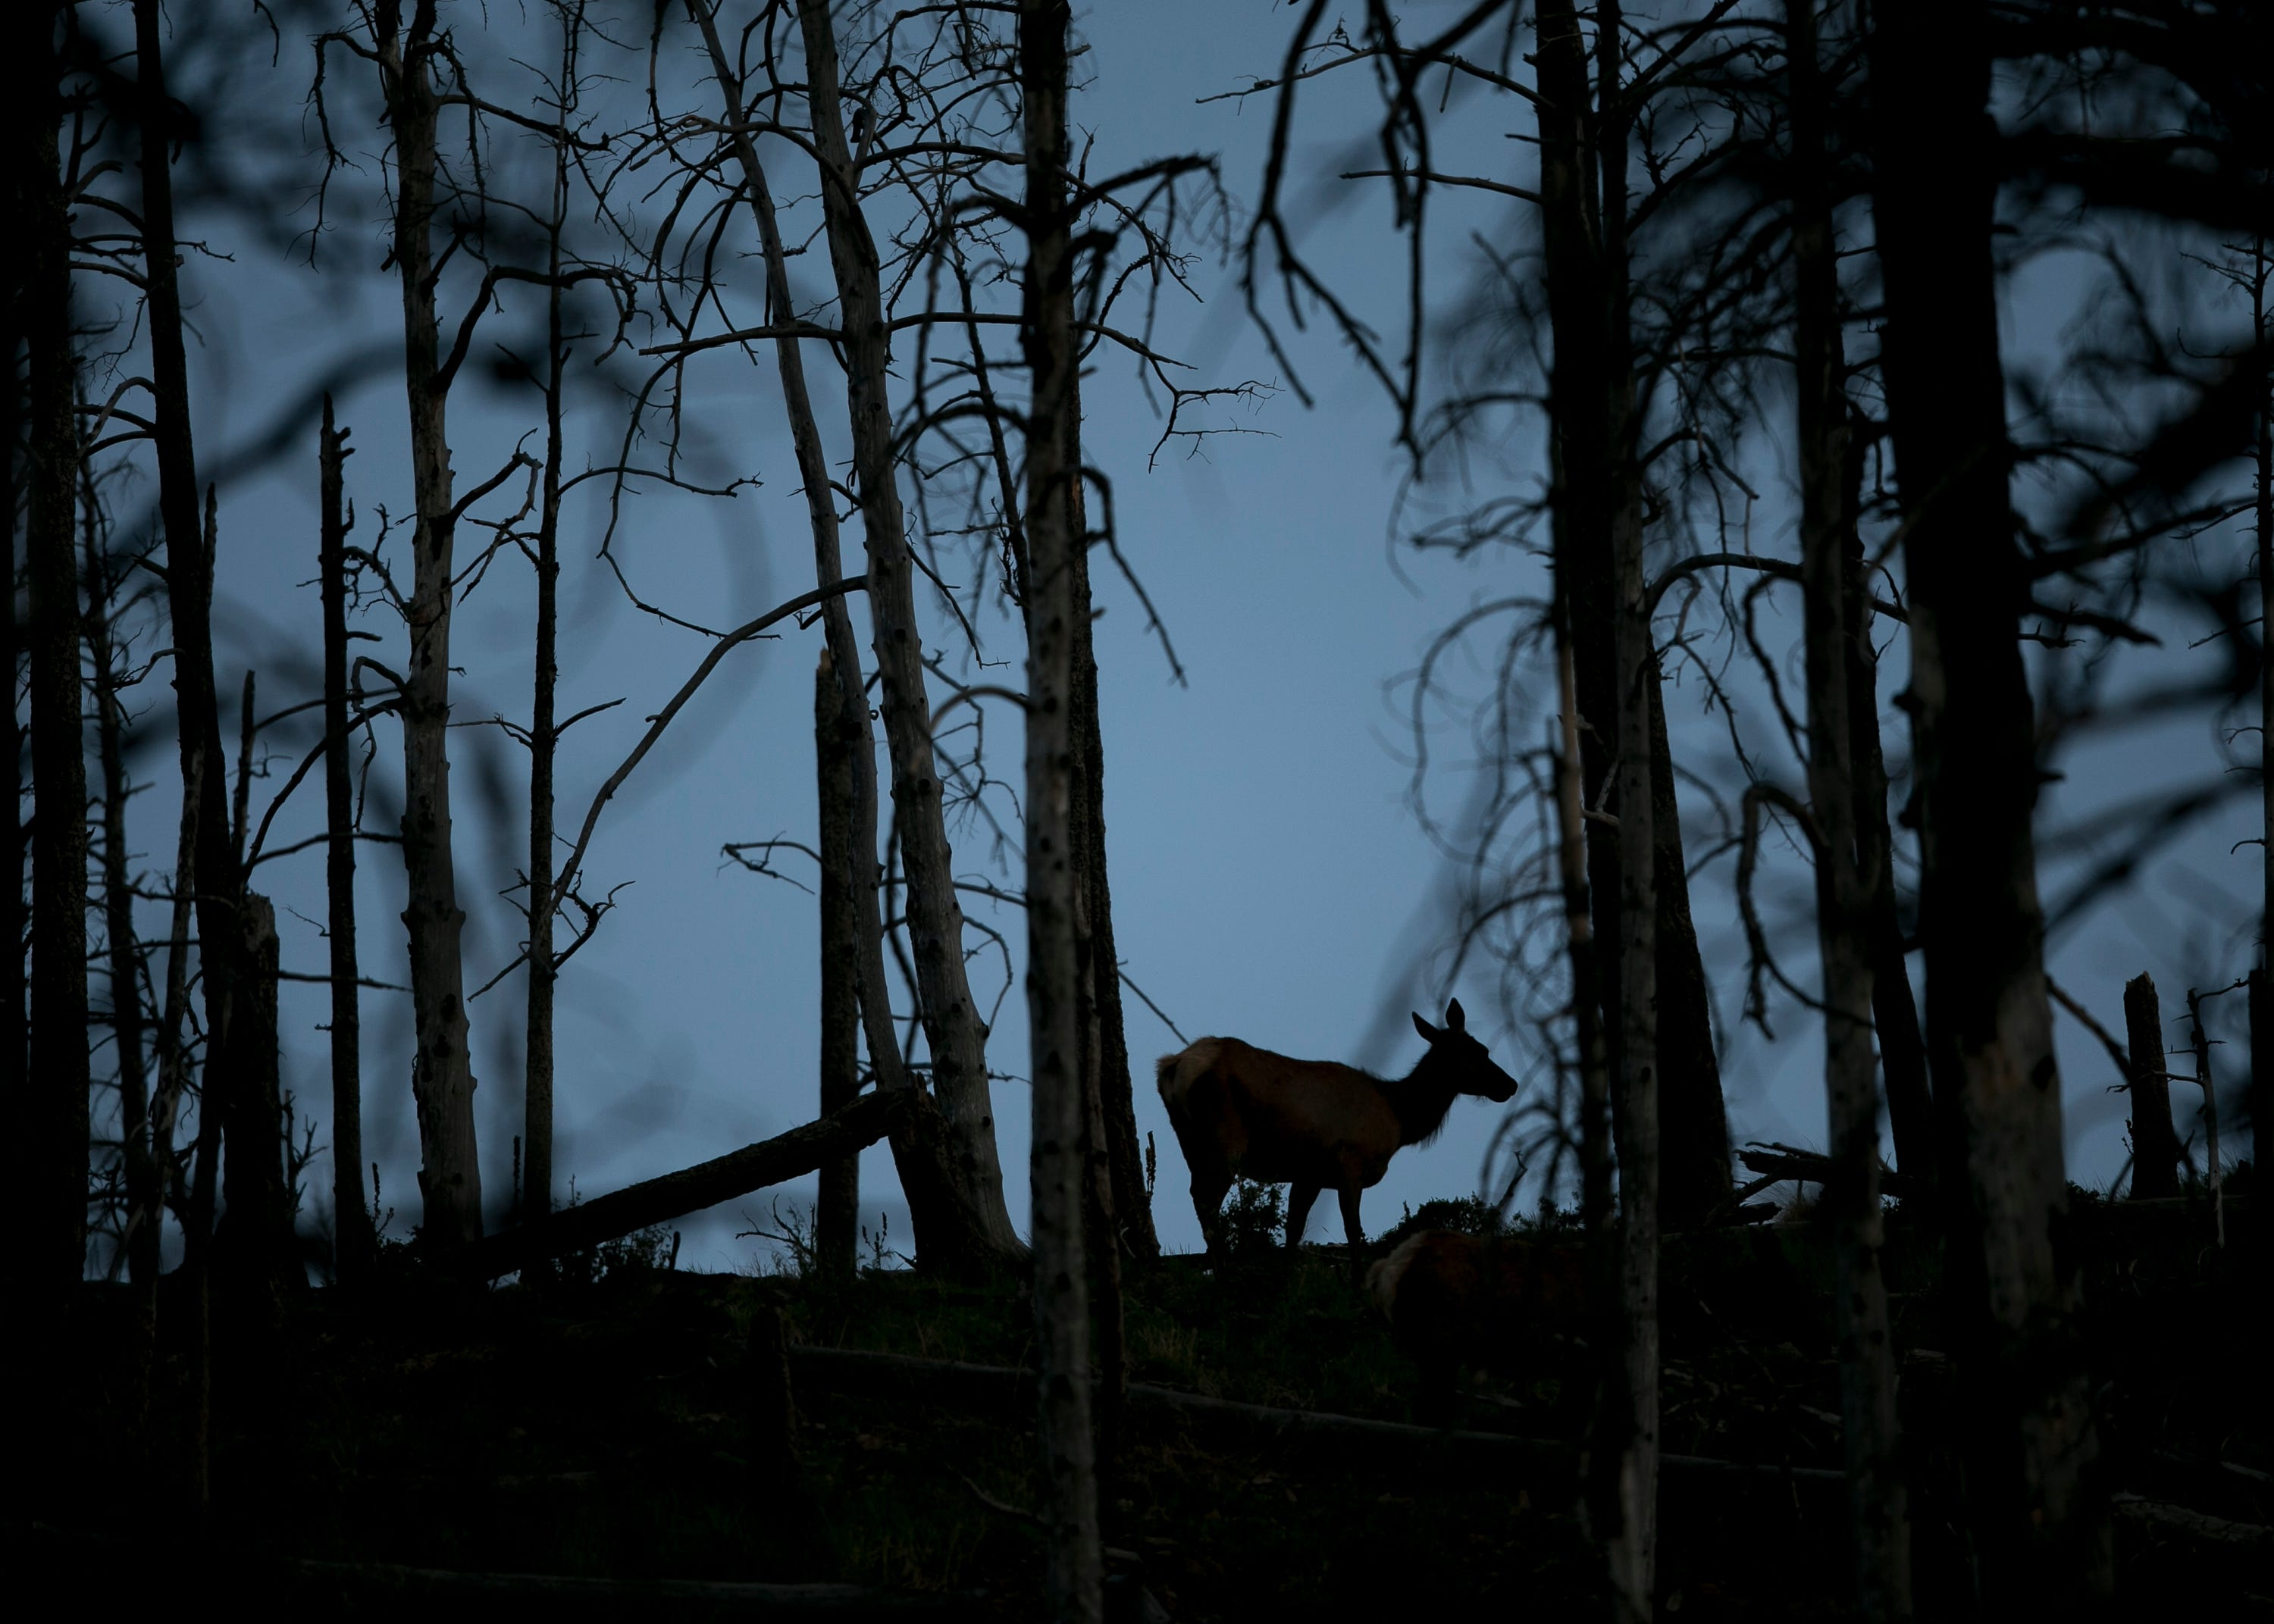 A deer walks through the trees of a burn scar from the 2012 Little Bear Fire in Ruidoso, New Mexico, on May 31, 2019.